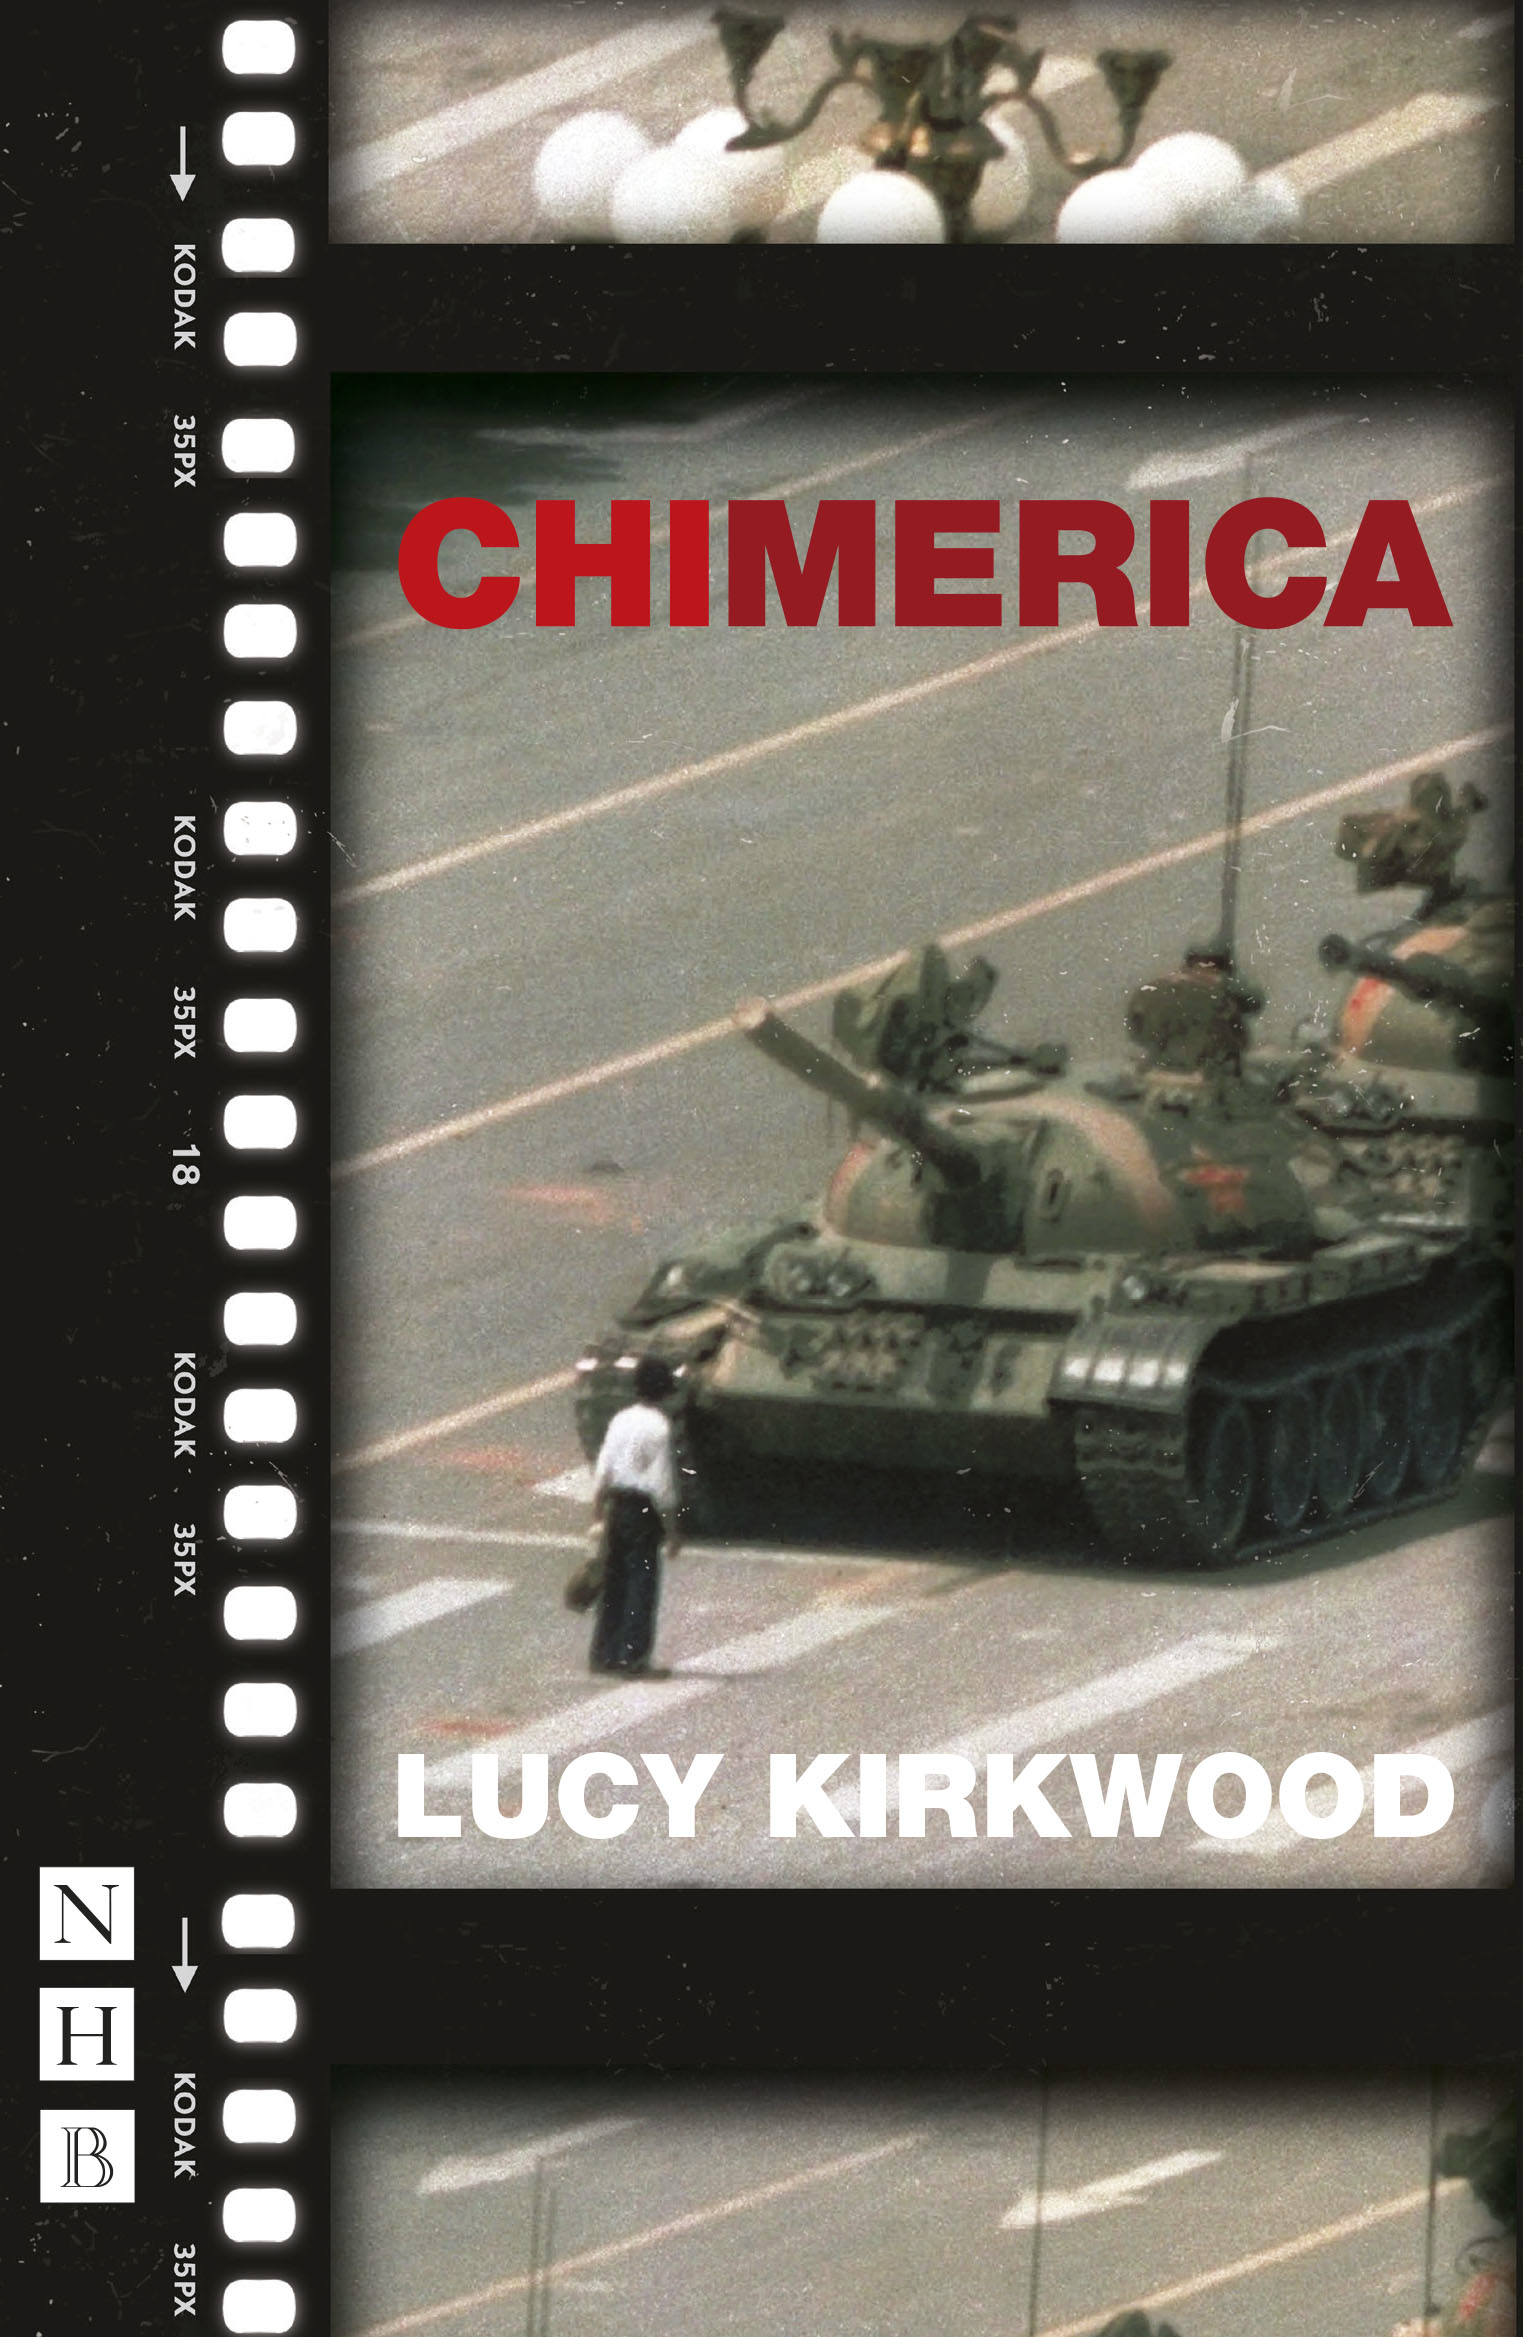 Nick Hern Books - Images for News items - Chimerica_WestEnd.jpg